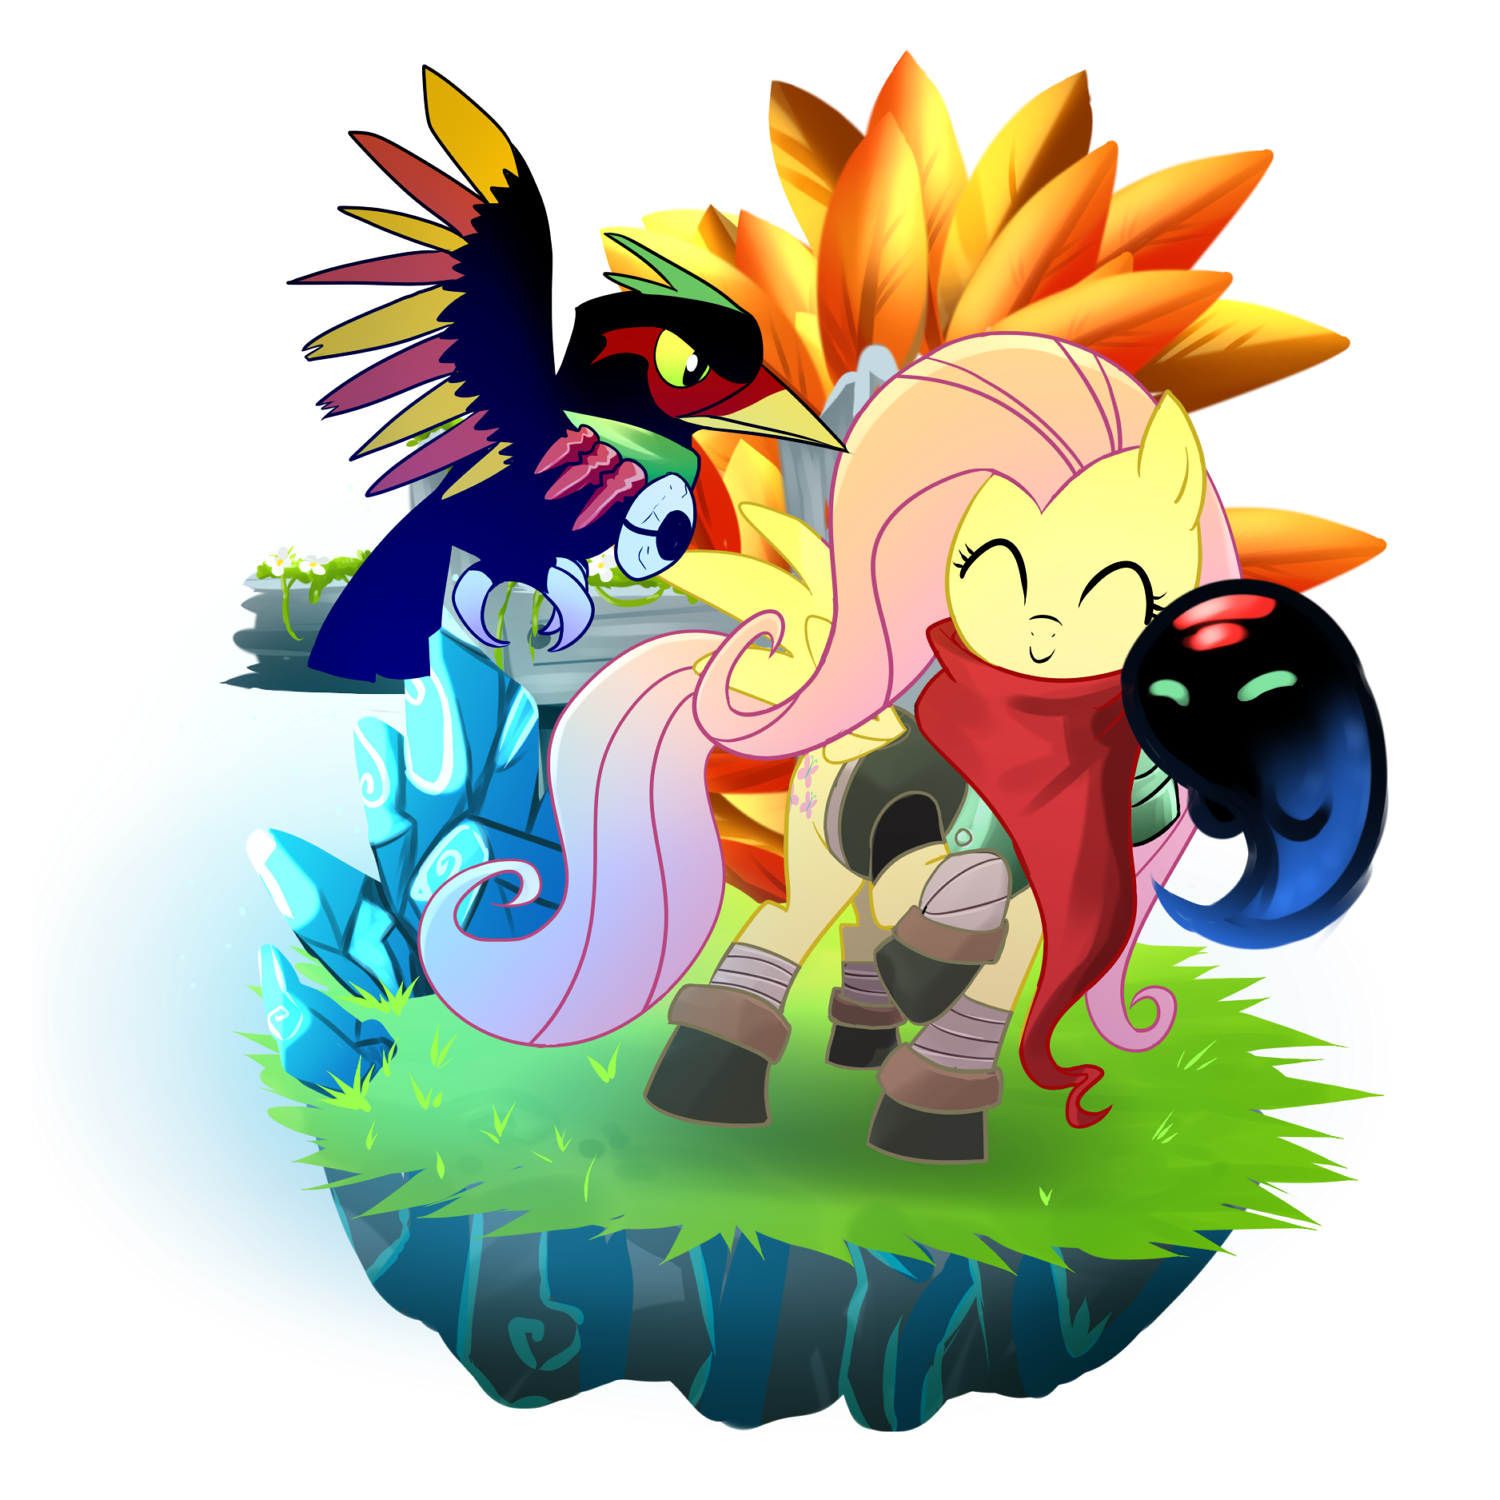 Bastion drawing mlp. My little pony friendship